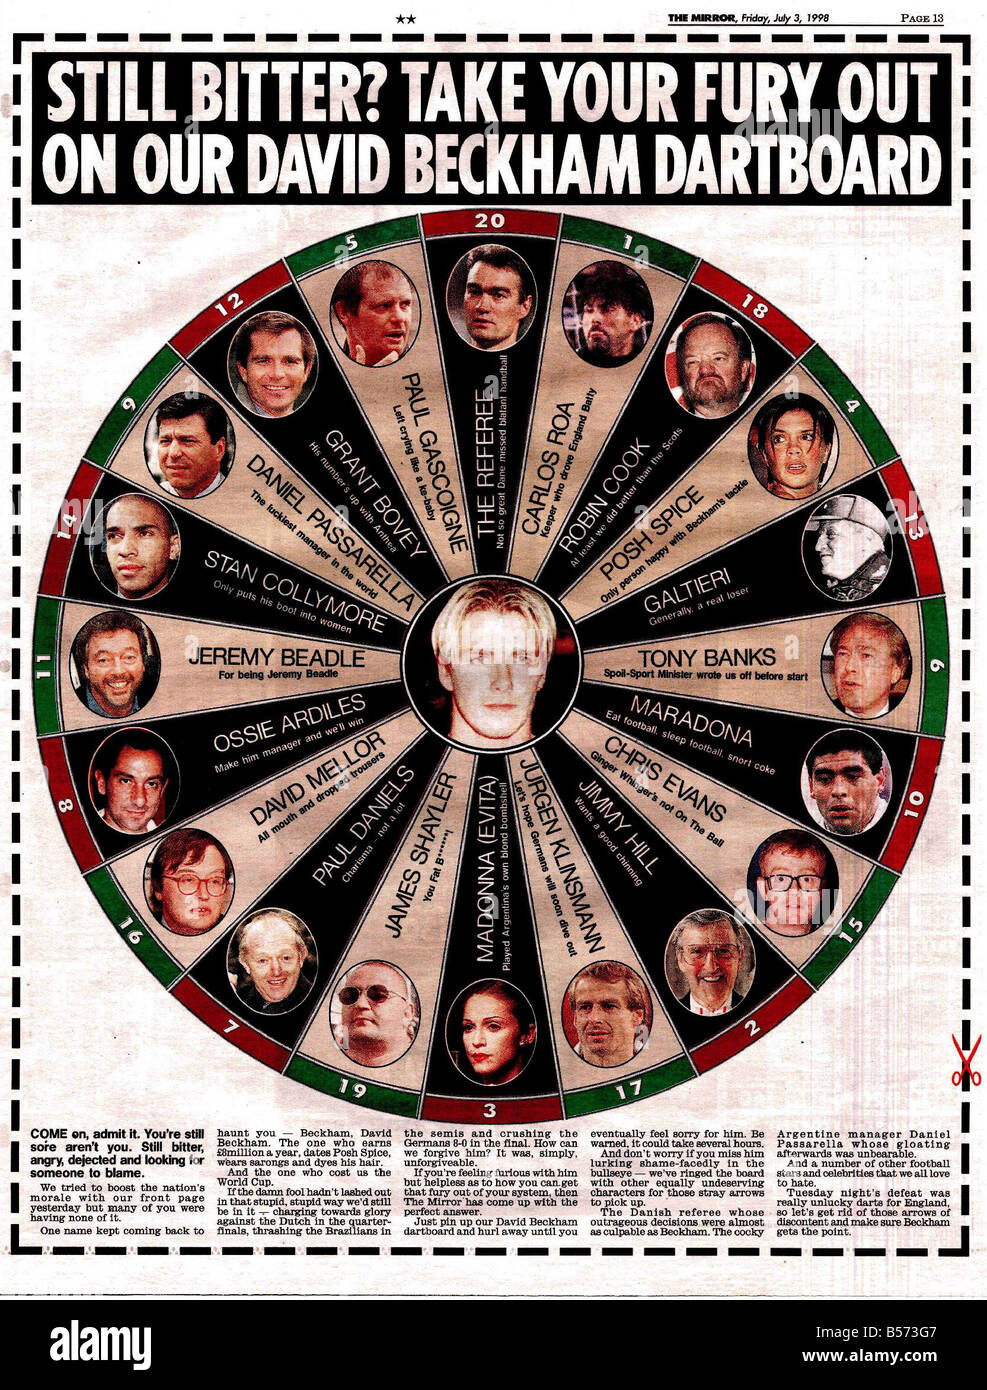 Daily Mirror Pages 03071998 Still Bitter? Take your fury out on our David Beckham dartboard David Neckham world - Stock Image